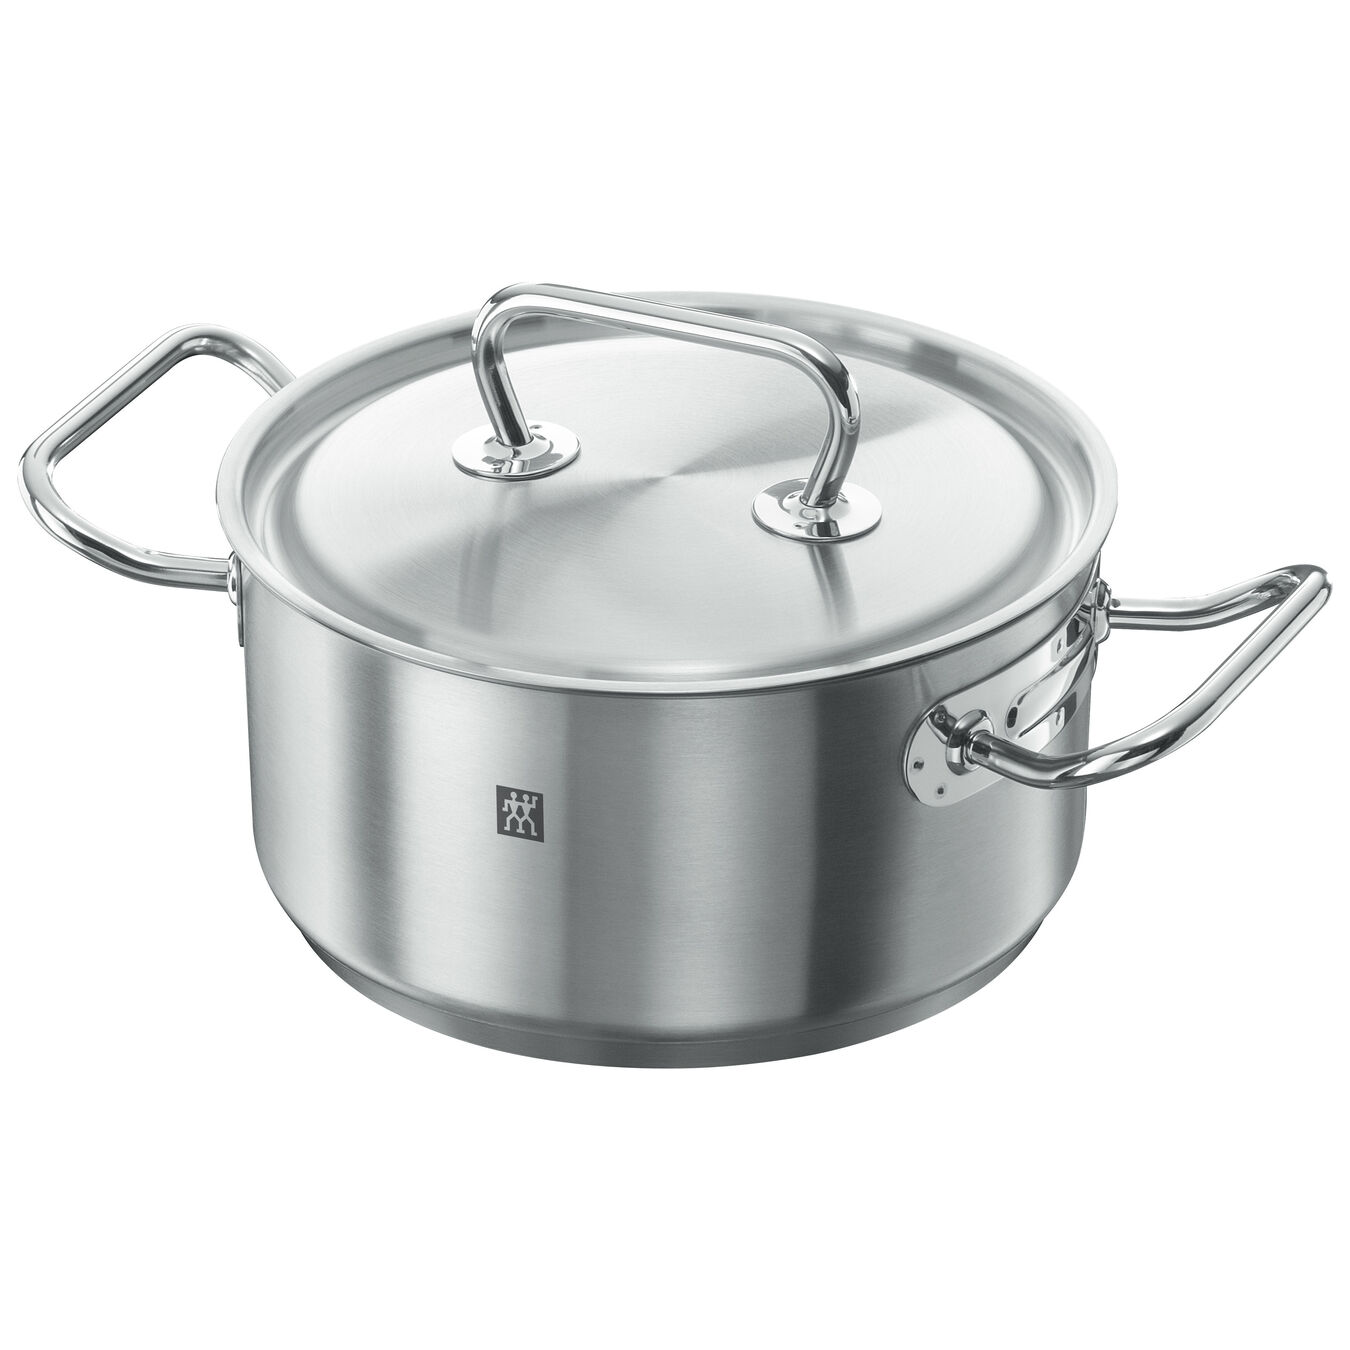 12-pcs 18/10 Stainless Steel Set de casseroles et de poêles,,large 4